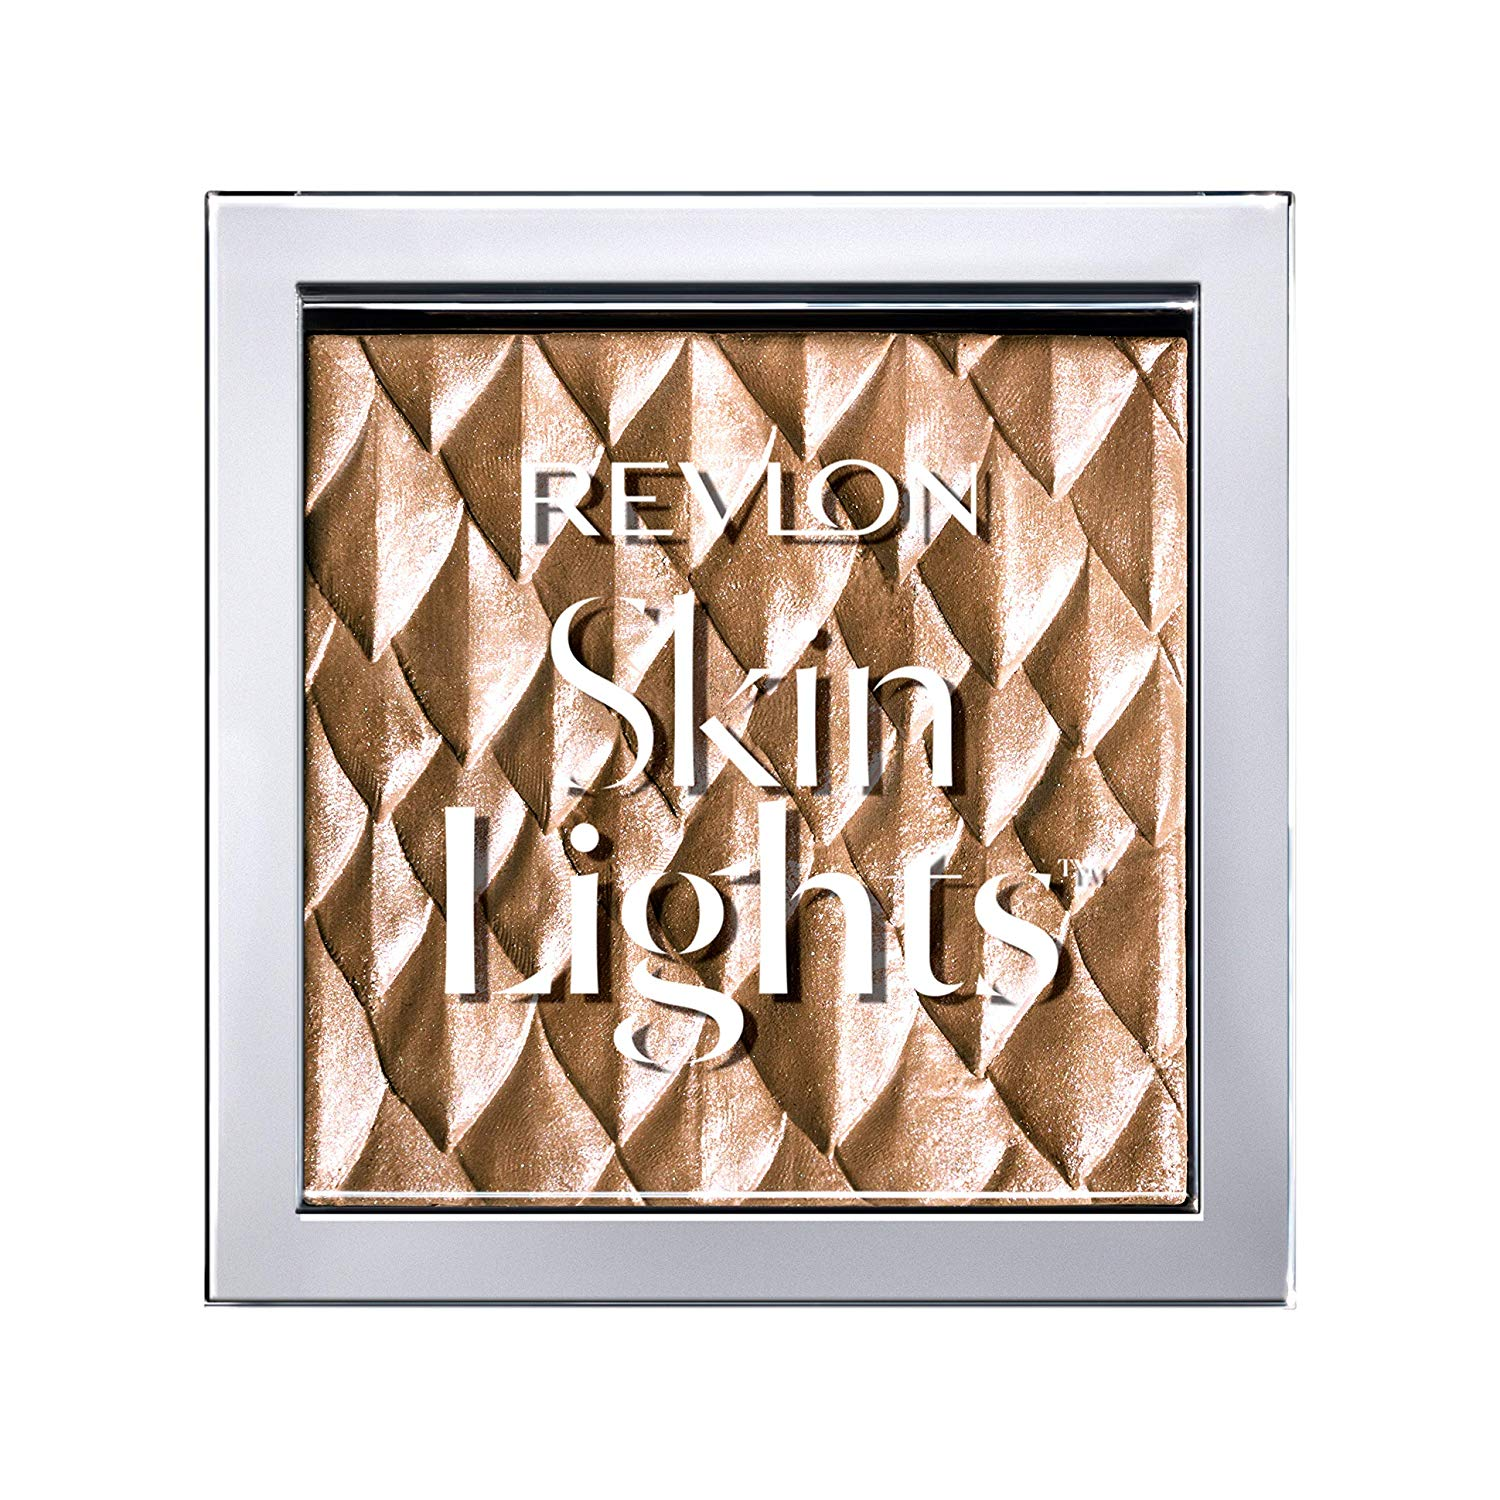 Revlon Skin Lights Highlighter